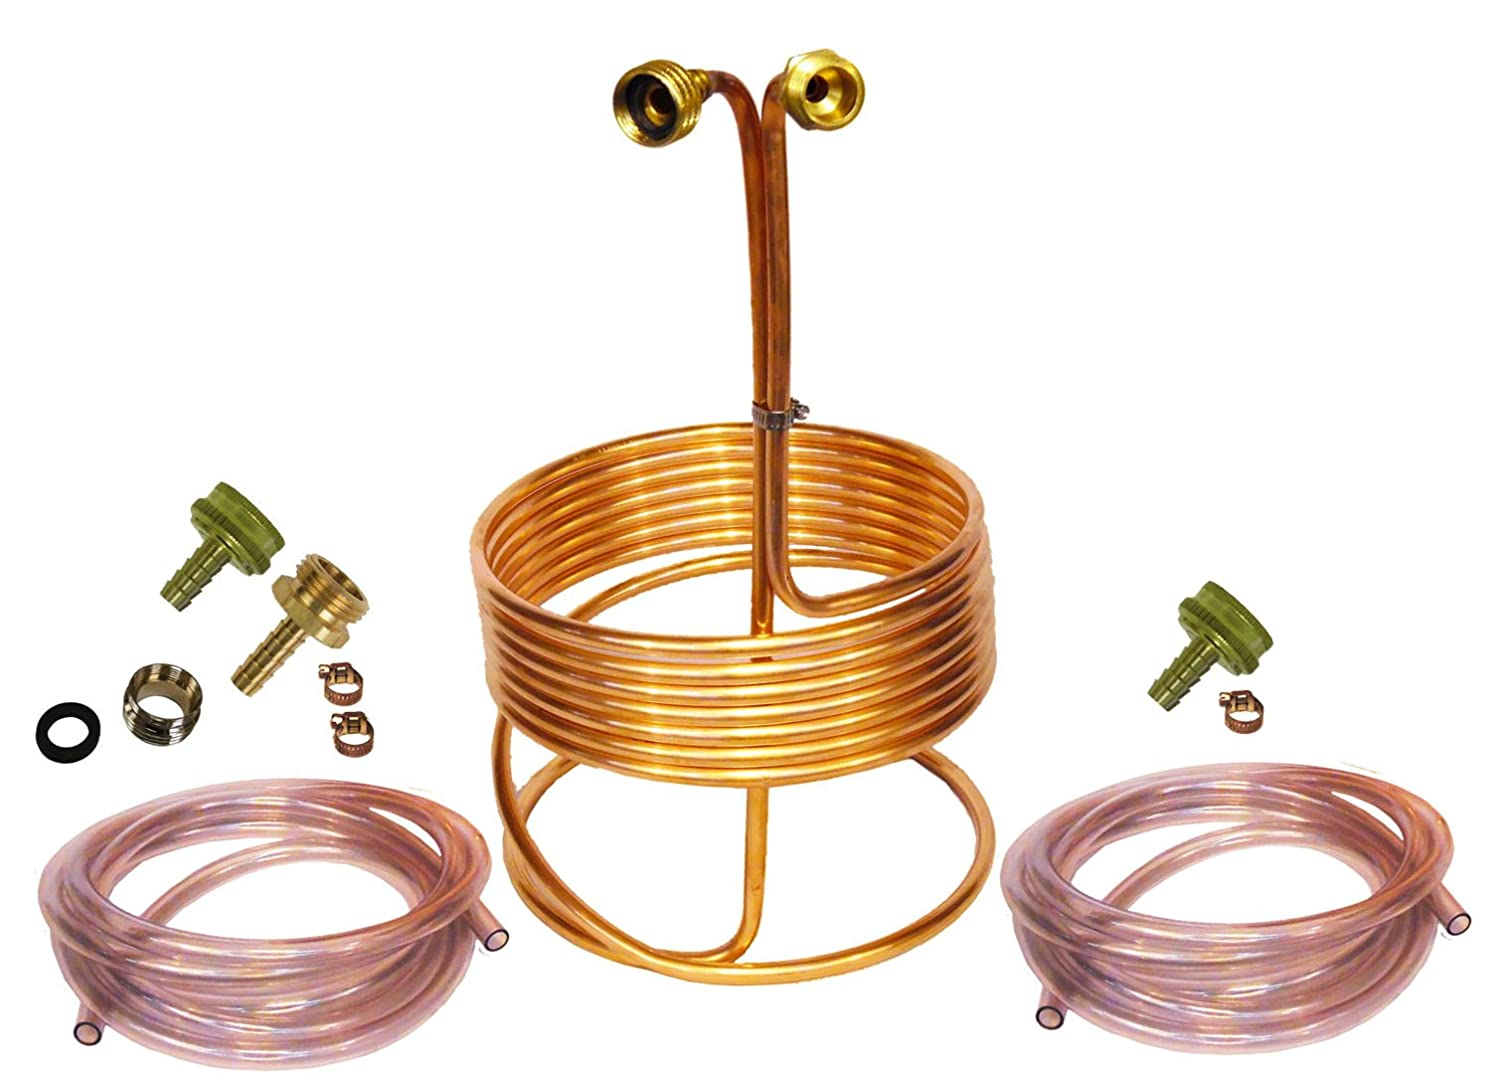 HomeBrewStuff 25' Copper Immersion Wort Chiller - Deluxe Package with 2x 12' Hoses, Fittings, Faucet Adapter